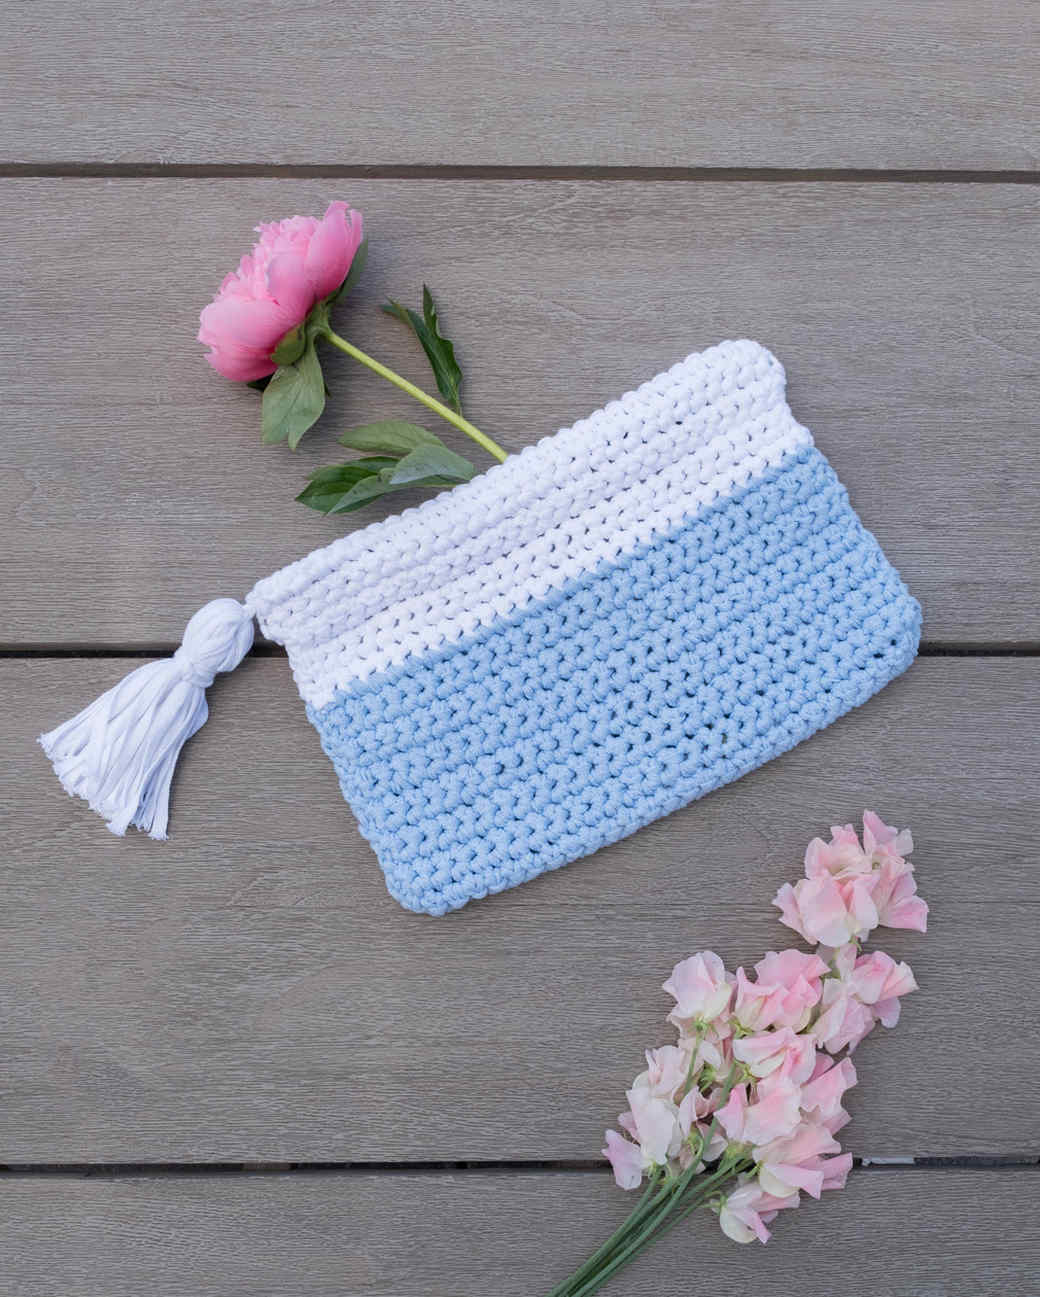 crocheted clutch tassel